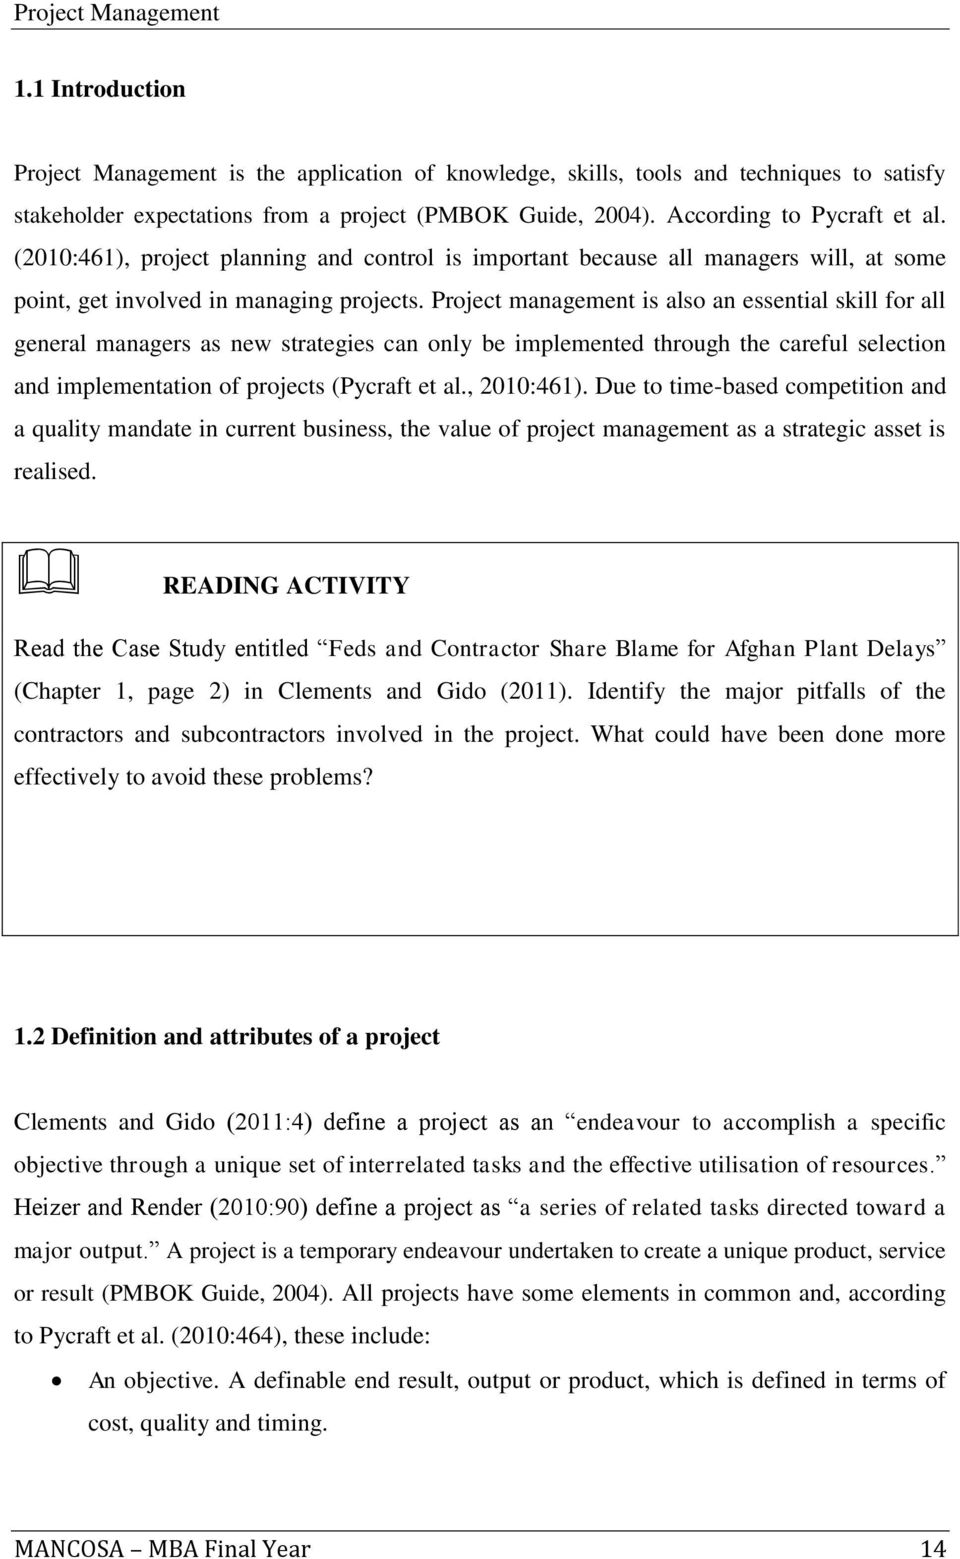 Project management study guide pdf project management is also an essential skill for all general managers as new strategies can only fandeluxe Image collections